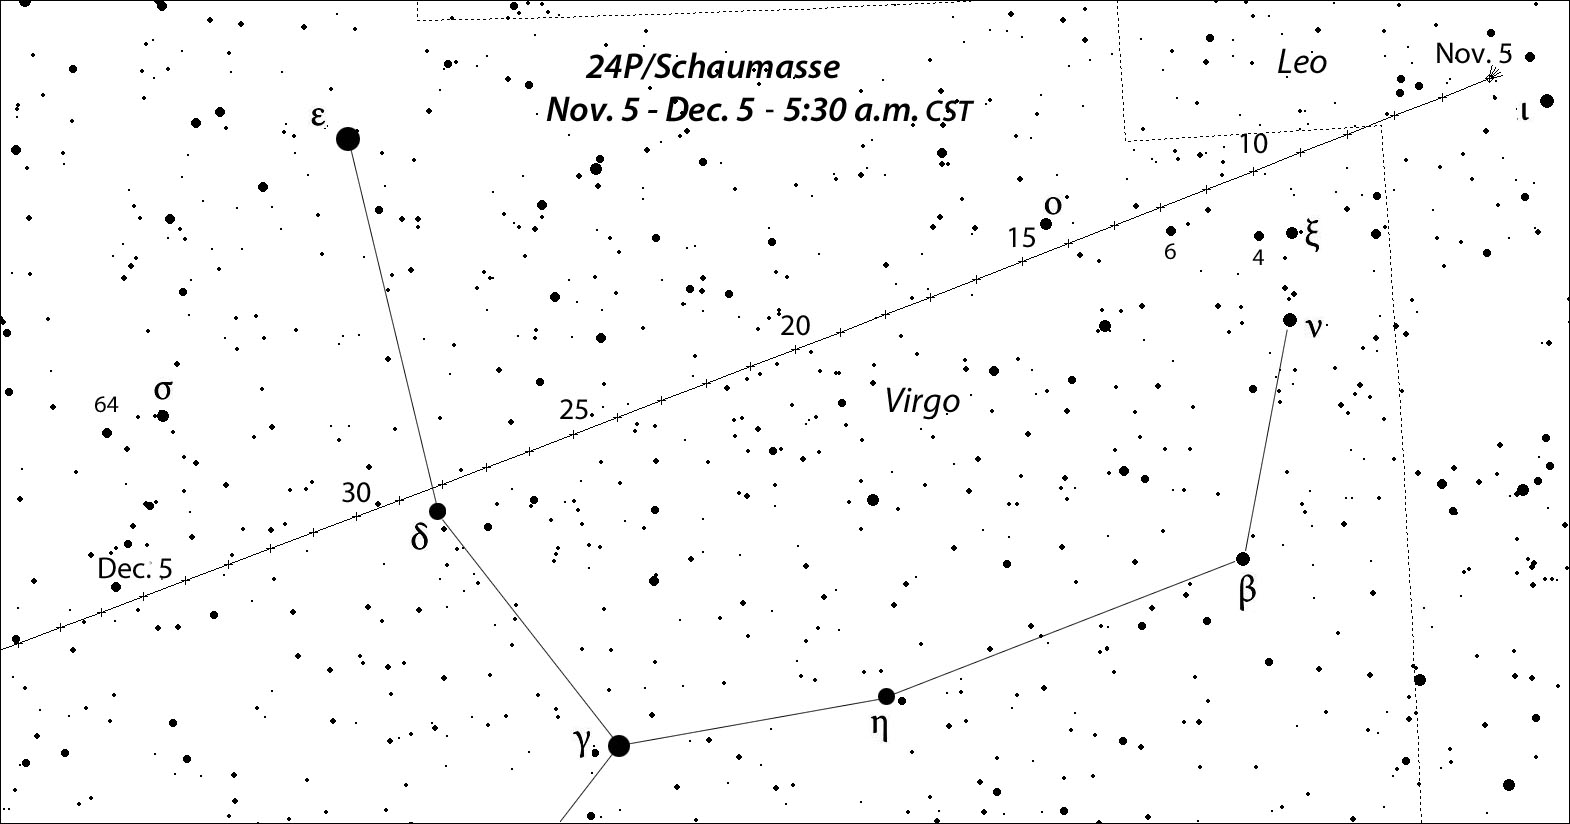 Another visible comets 2017 event for early birds: 24P/Schaumasse returns after 8.2 years, gliding from eastern Leo through Virgo in the wee hours of November and December.